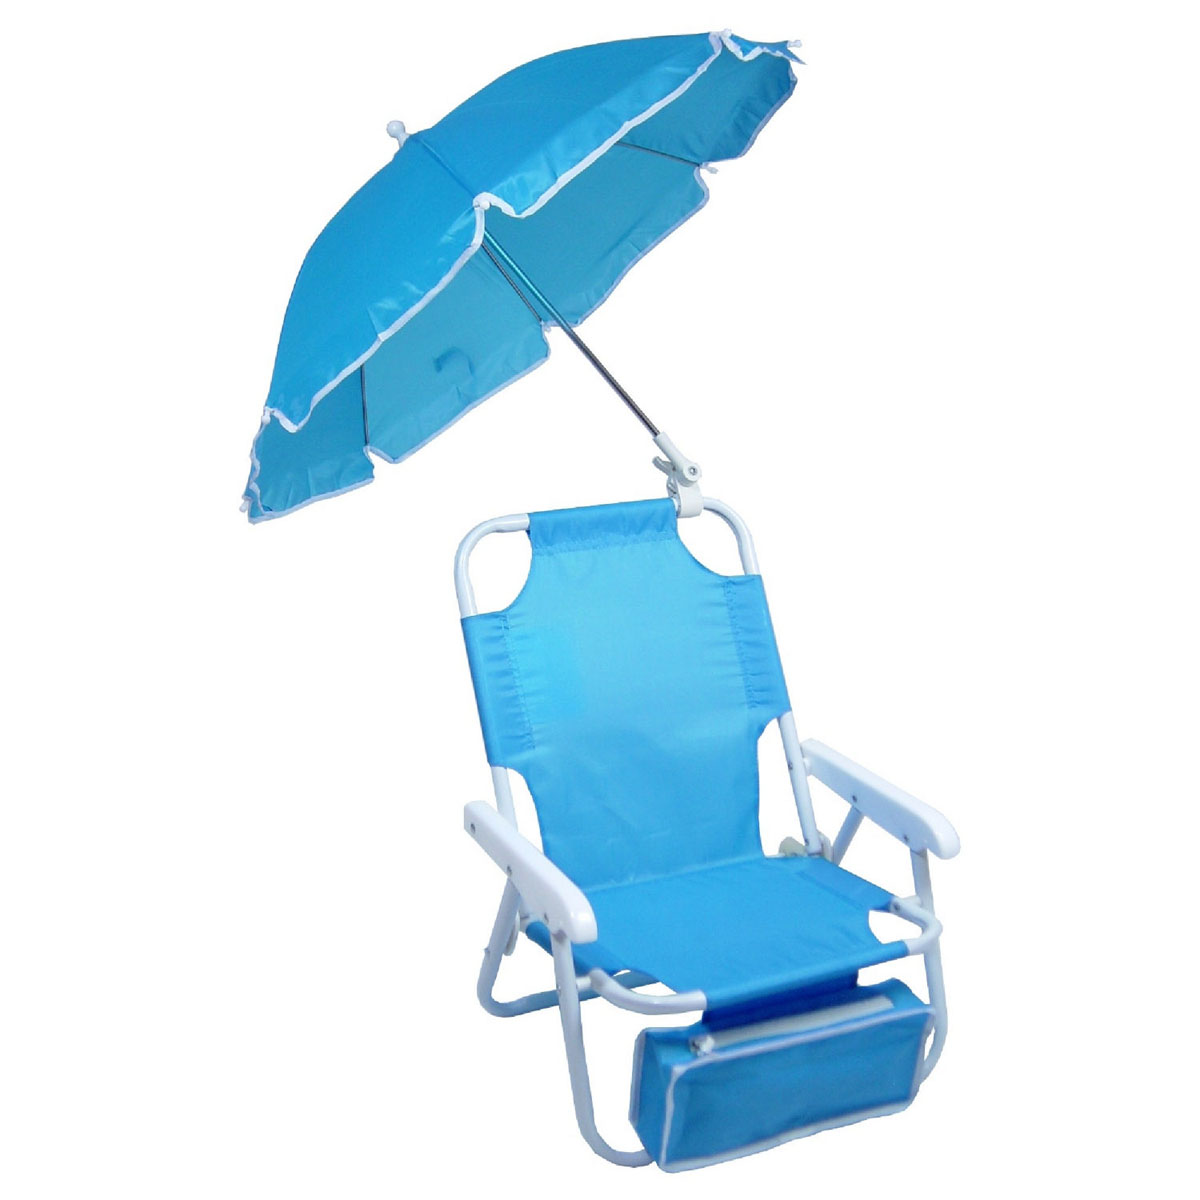 infant beach chair with umbrella how to install rail molding on stairs baby and walmart com